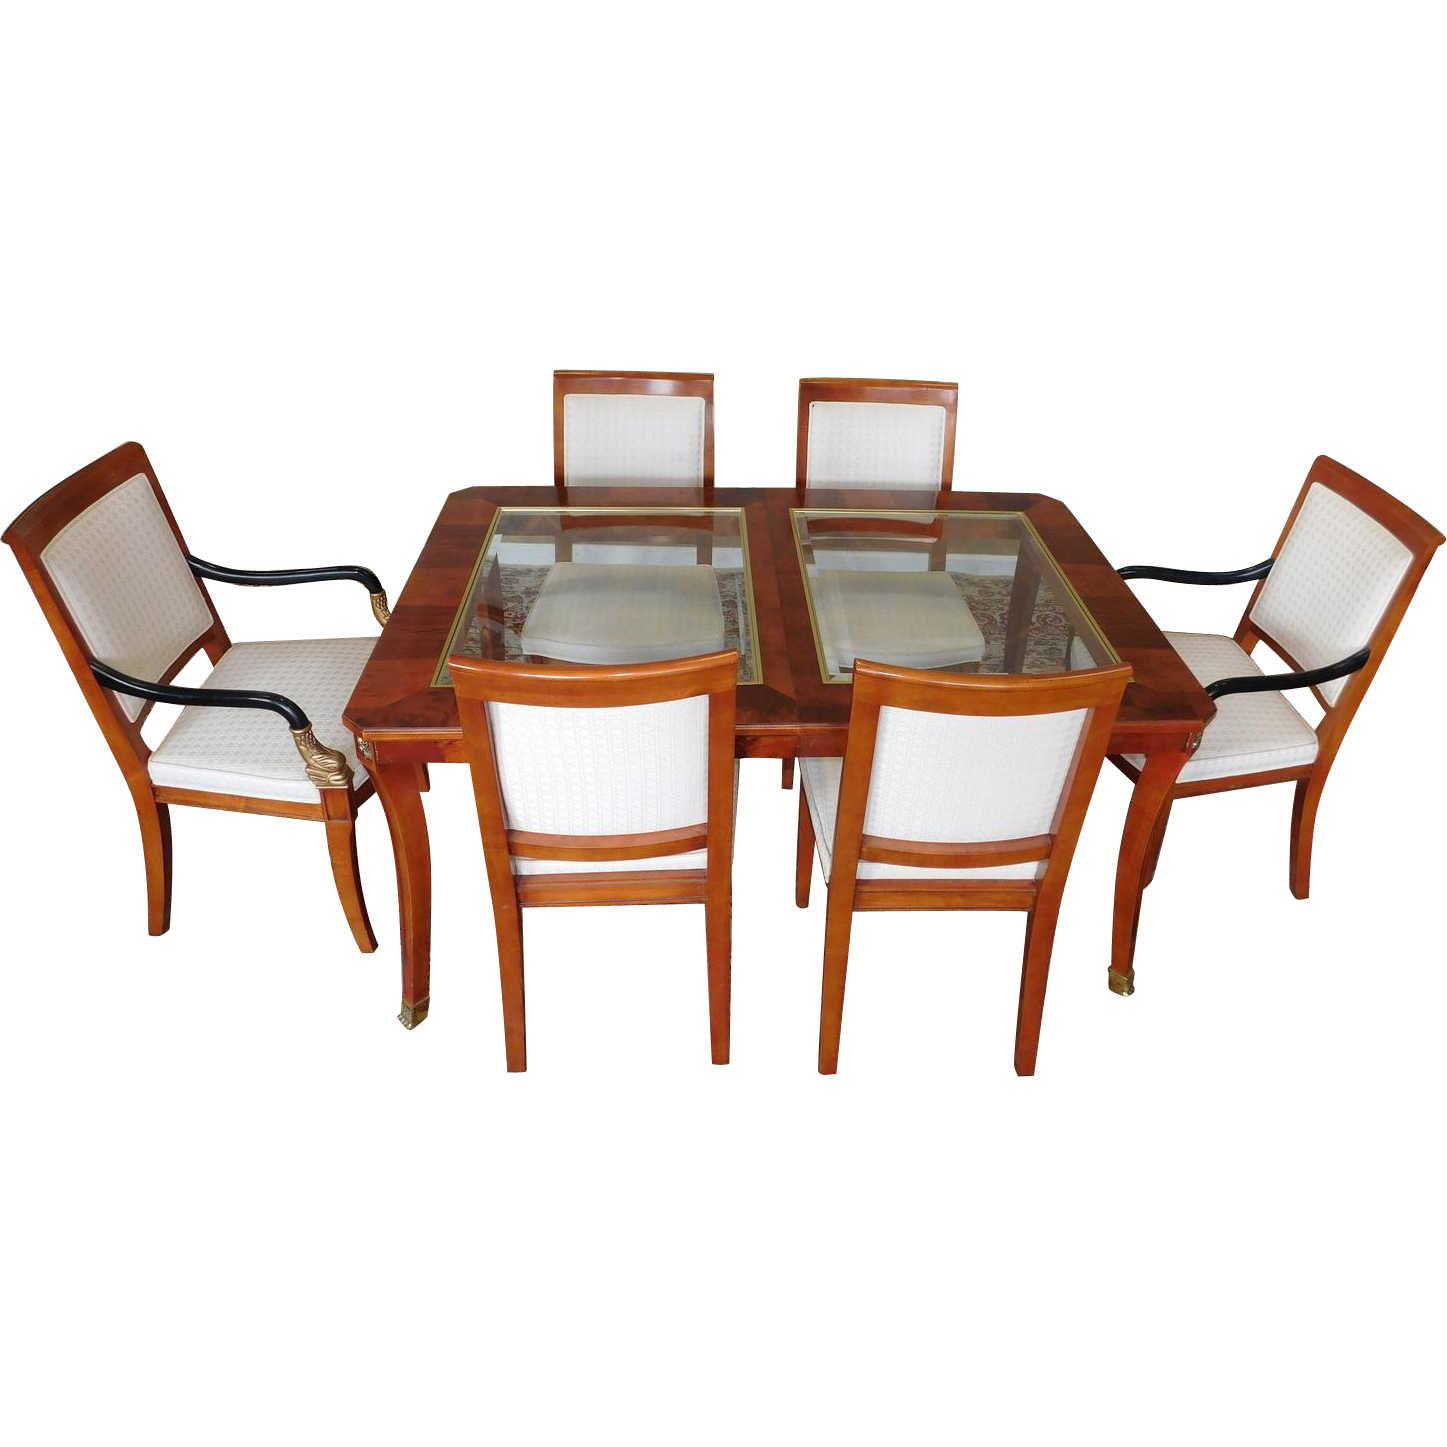 Century Furniture Biedermeier Style Glass Top Walnut Dining Room Table W/ 6  Chairs 1990s